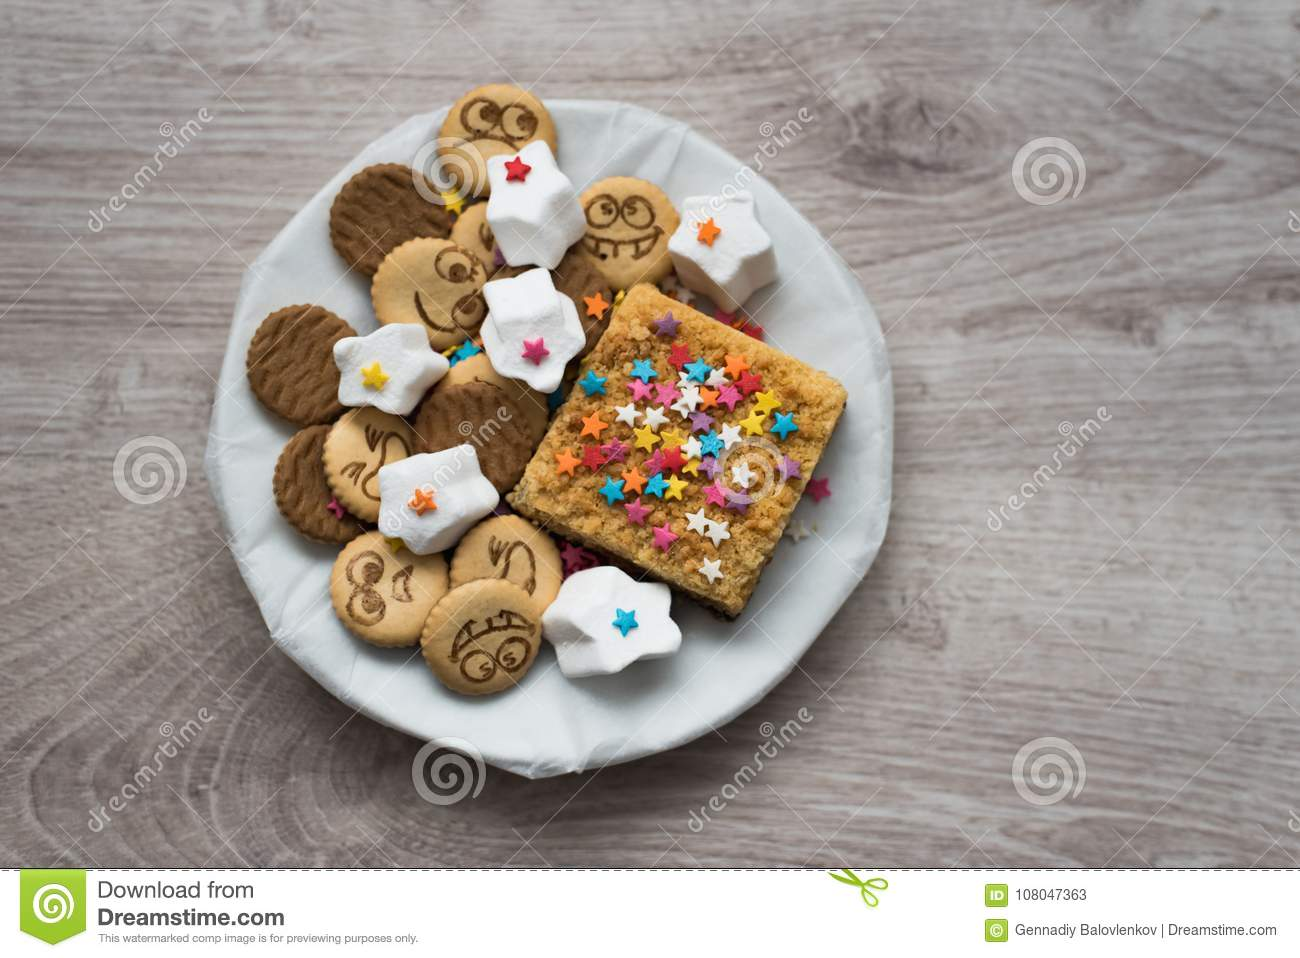 Variety of sweet festive cookies on a wooden background